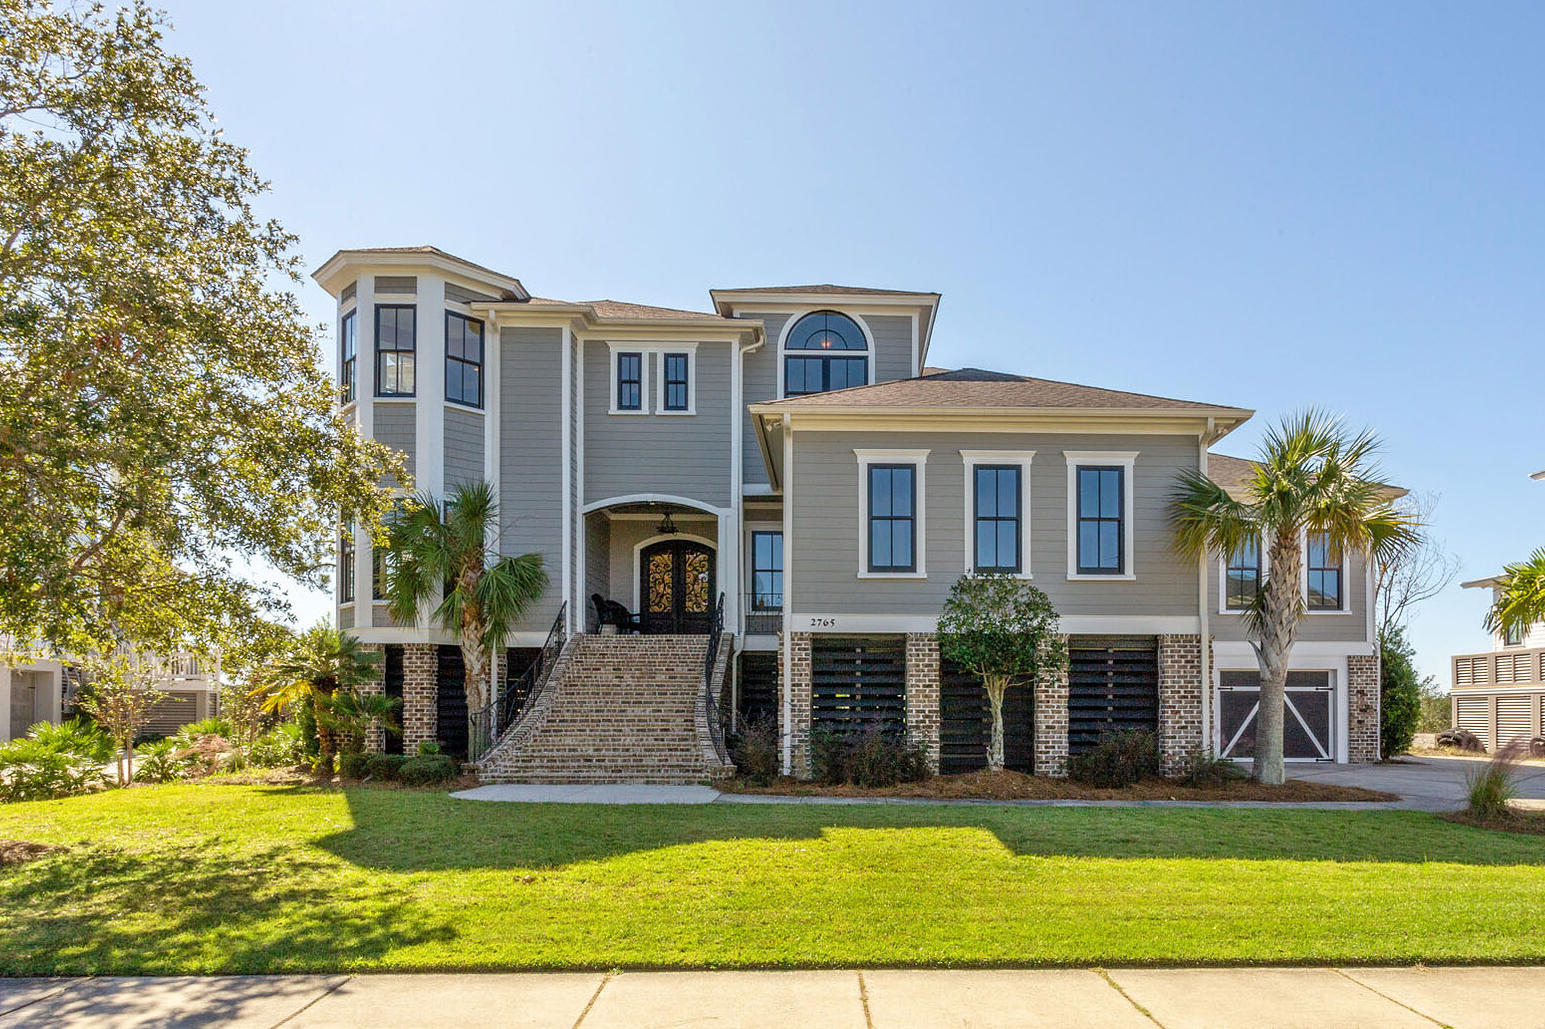 Rivertowne Country Club Homes For Sale - 2765 Parkers Landing, Mount Pleasant, SC - 8